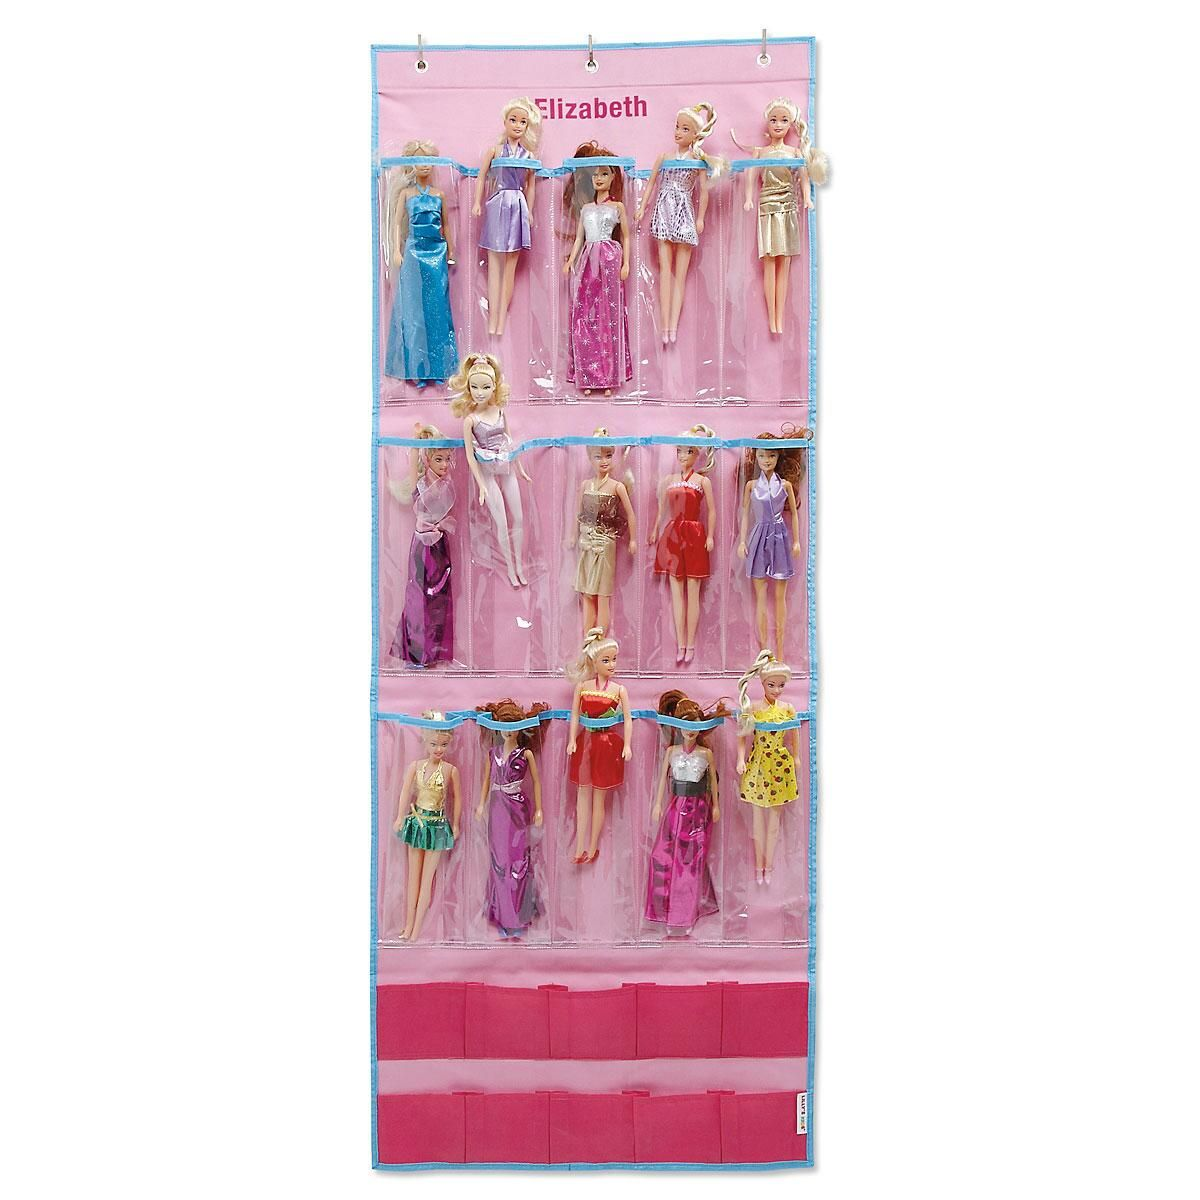 Personalized Doll Collection Organizer